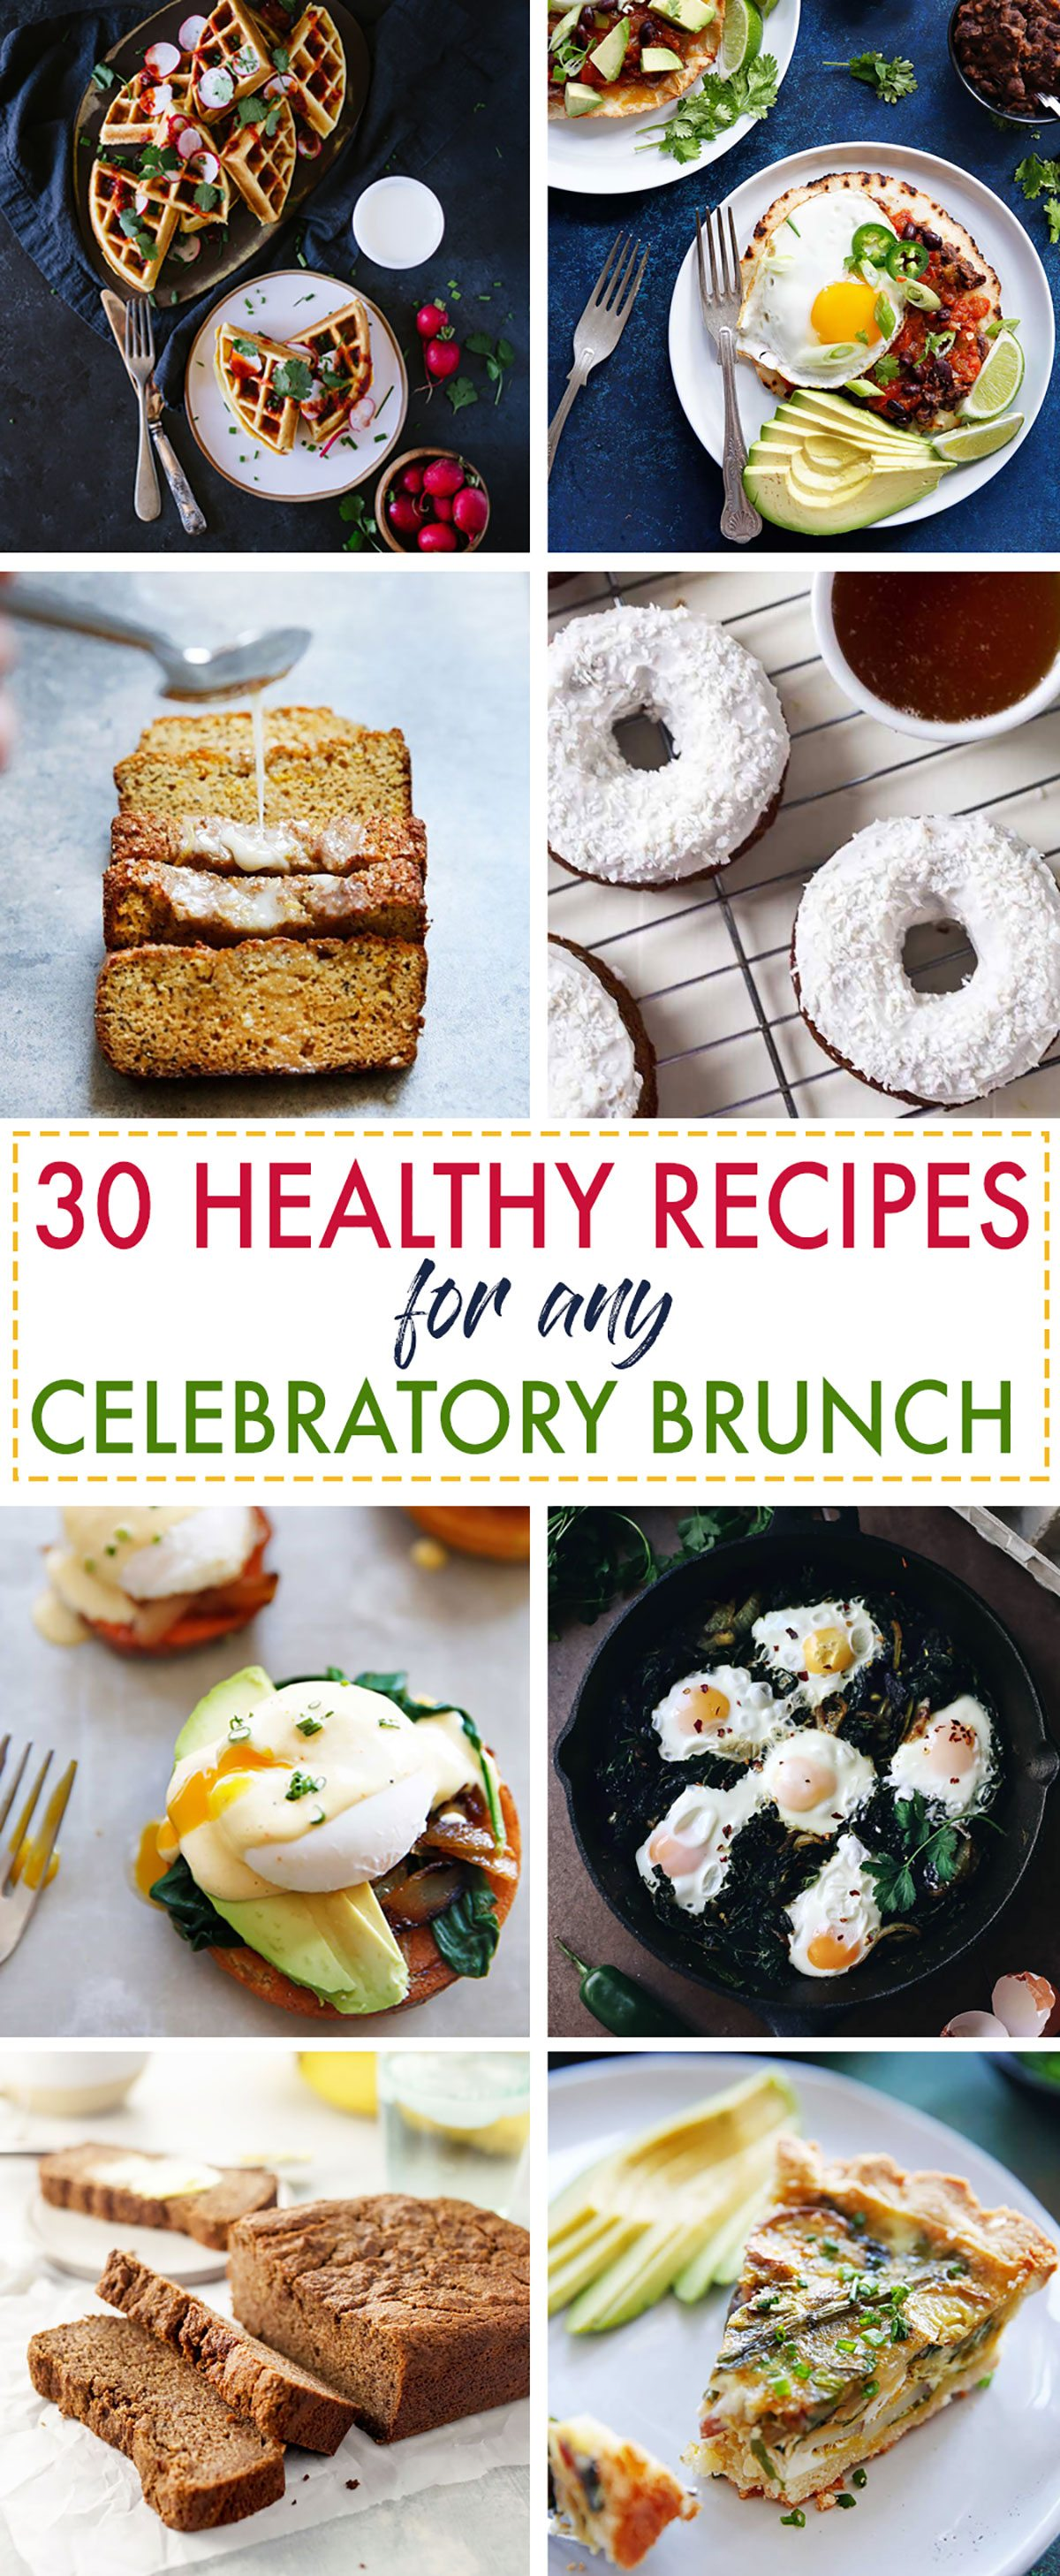 30 Healthy Recipes For a Celebratory Brunch - Lexi's Clean Kitchen